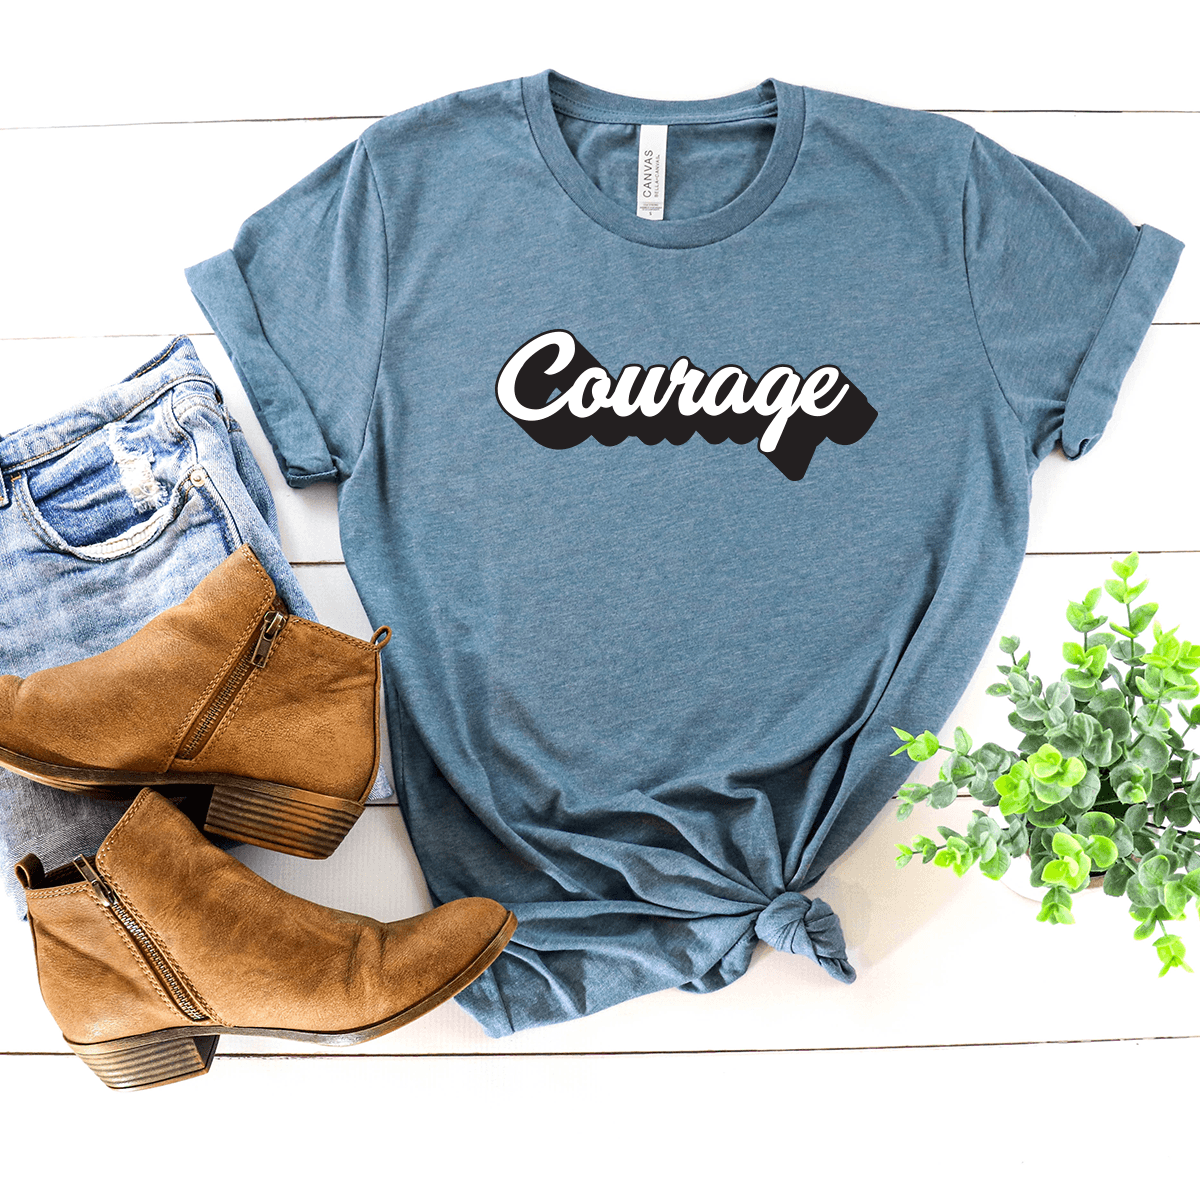 Courage - Bella+Canvas Tee